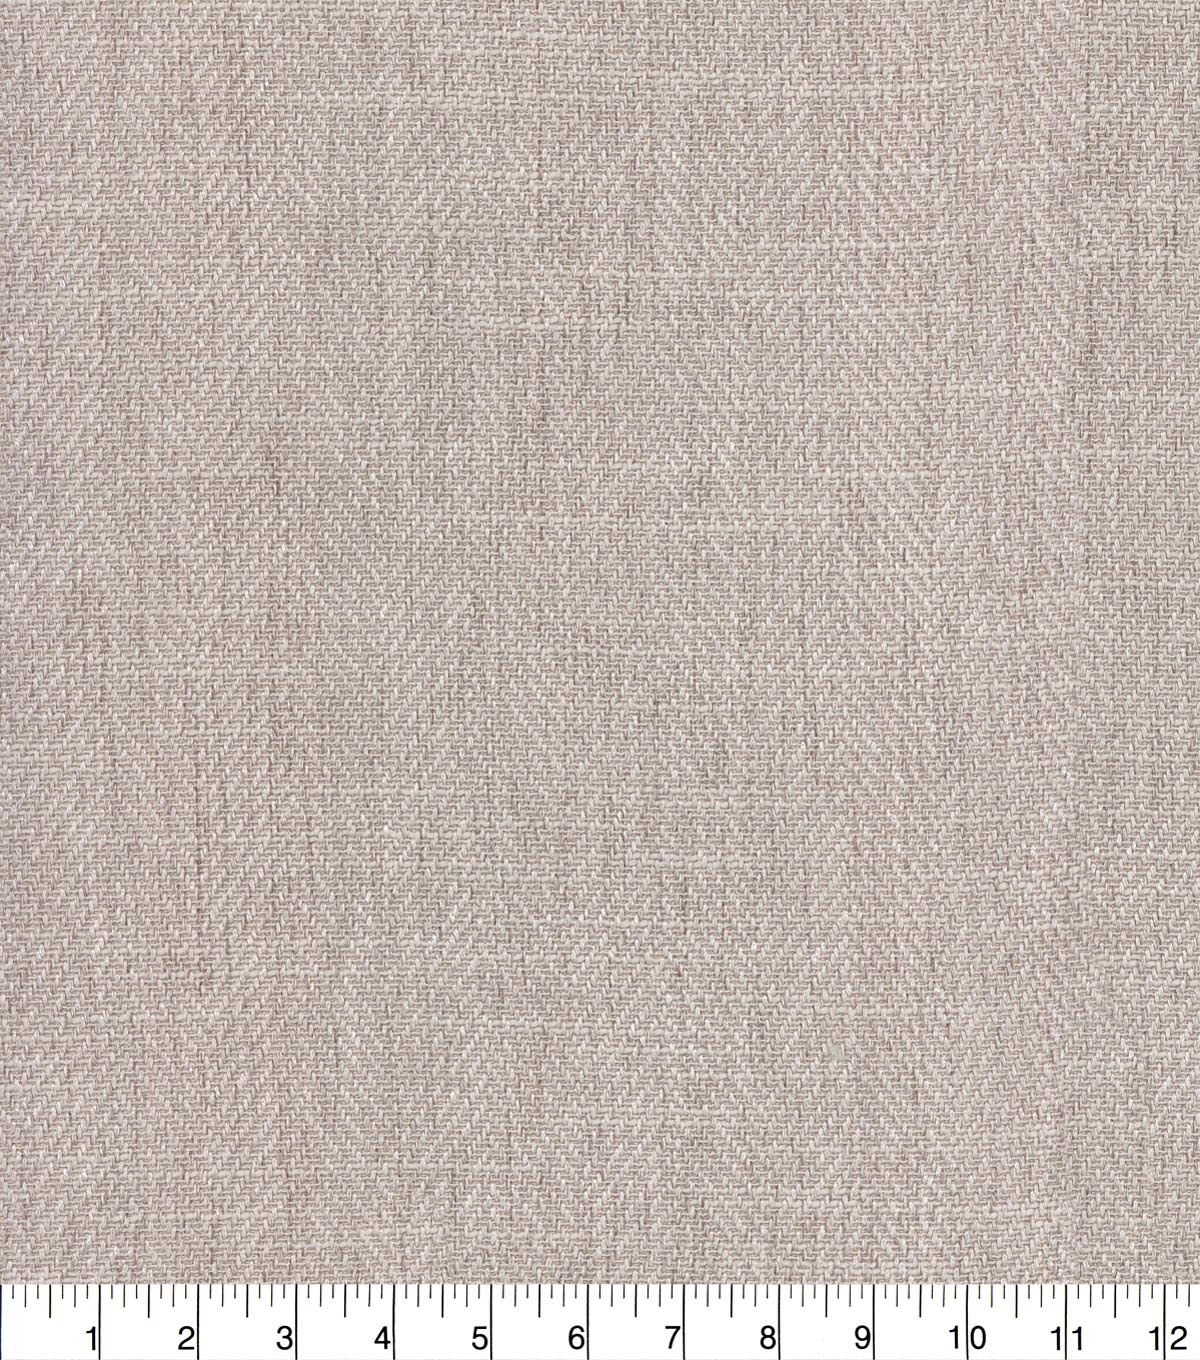 Home Decor 8\u0022x8\u0022 Fabric Swatch-P/K Lifestyles Terrian Linen